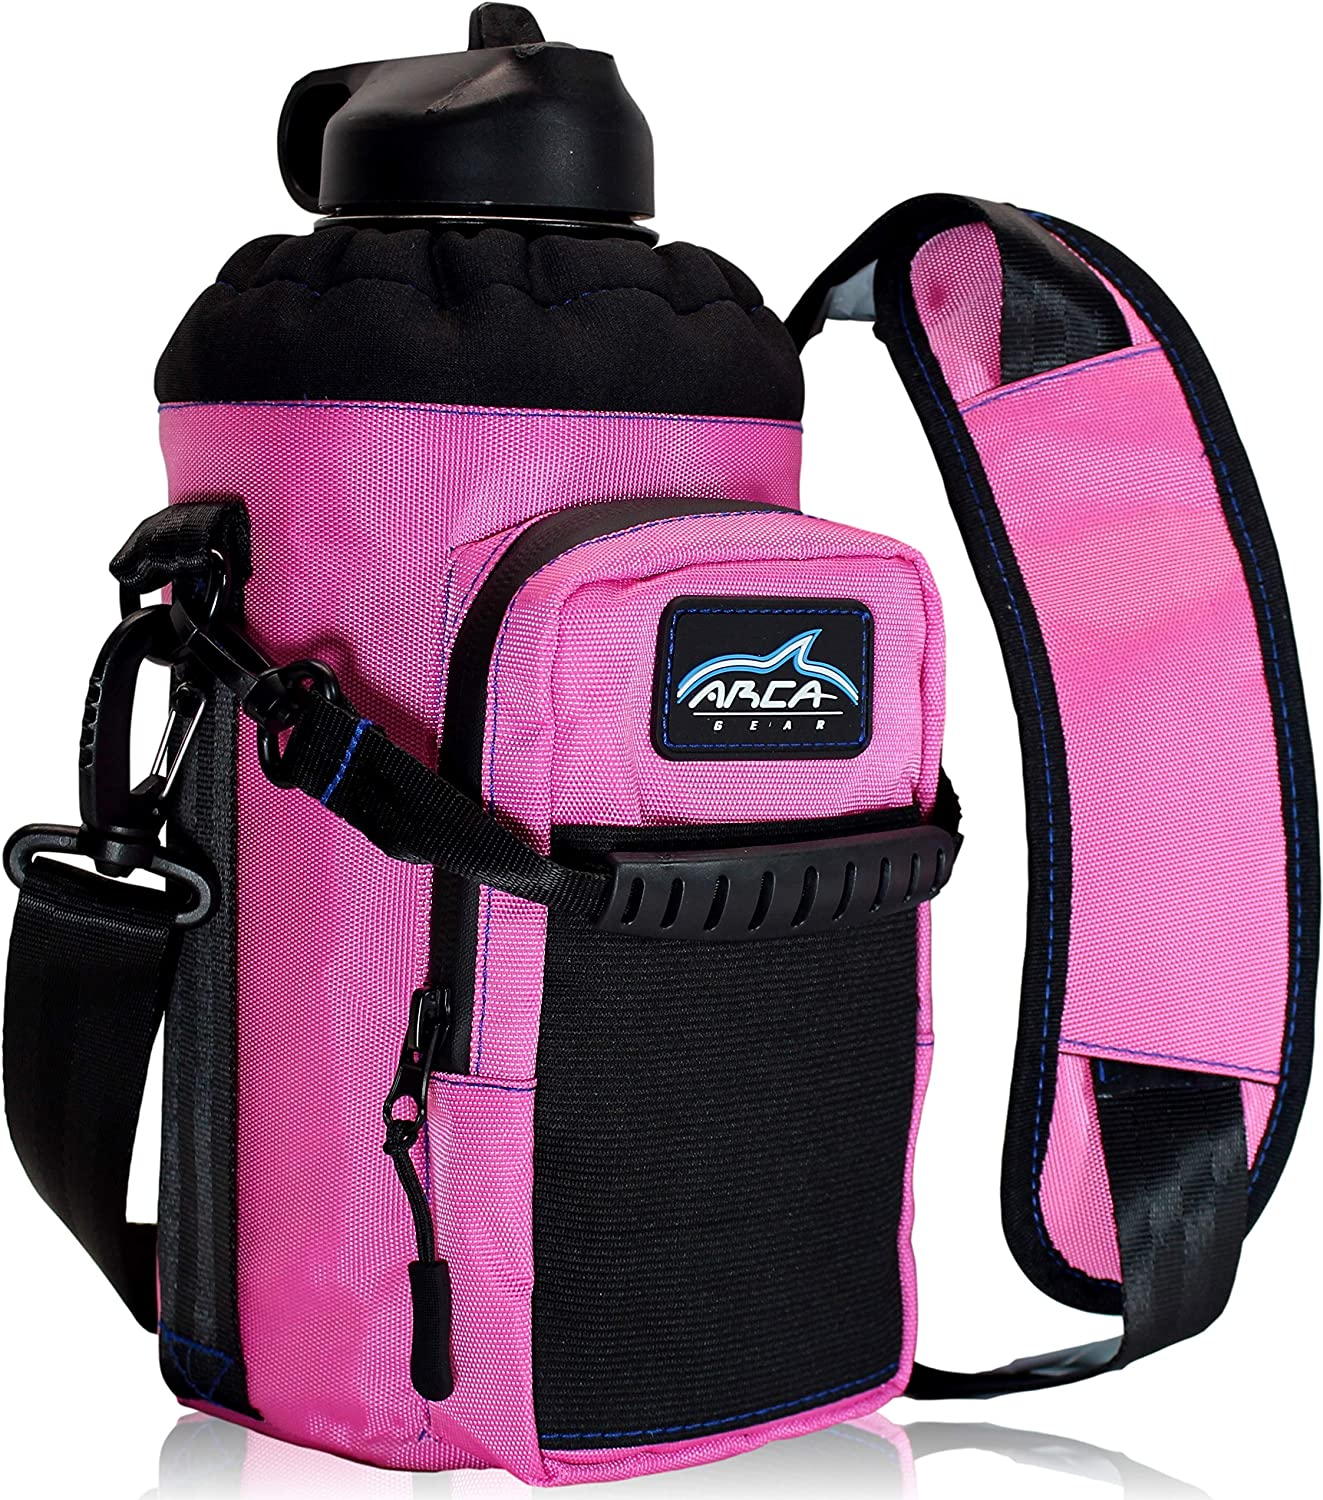 Arca Gear 64 OFFicial store oz Hydro Carrier - Now free shipping Water C w Sling Insulated Bottle